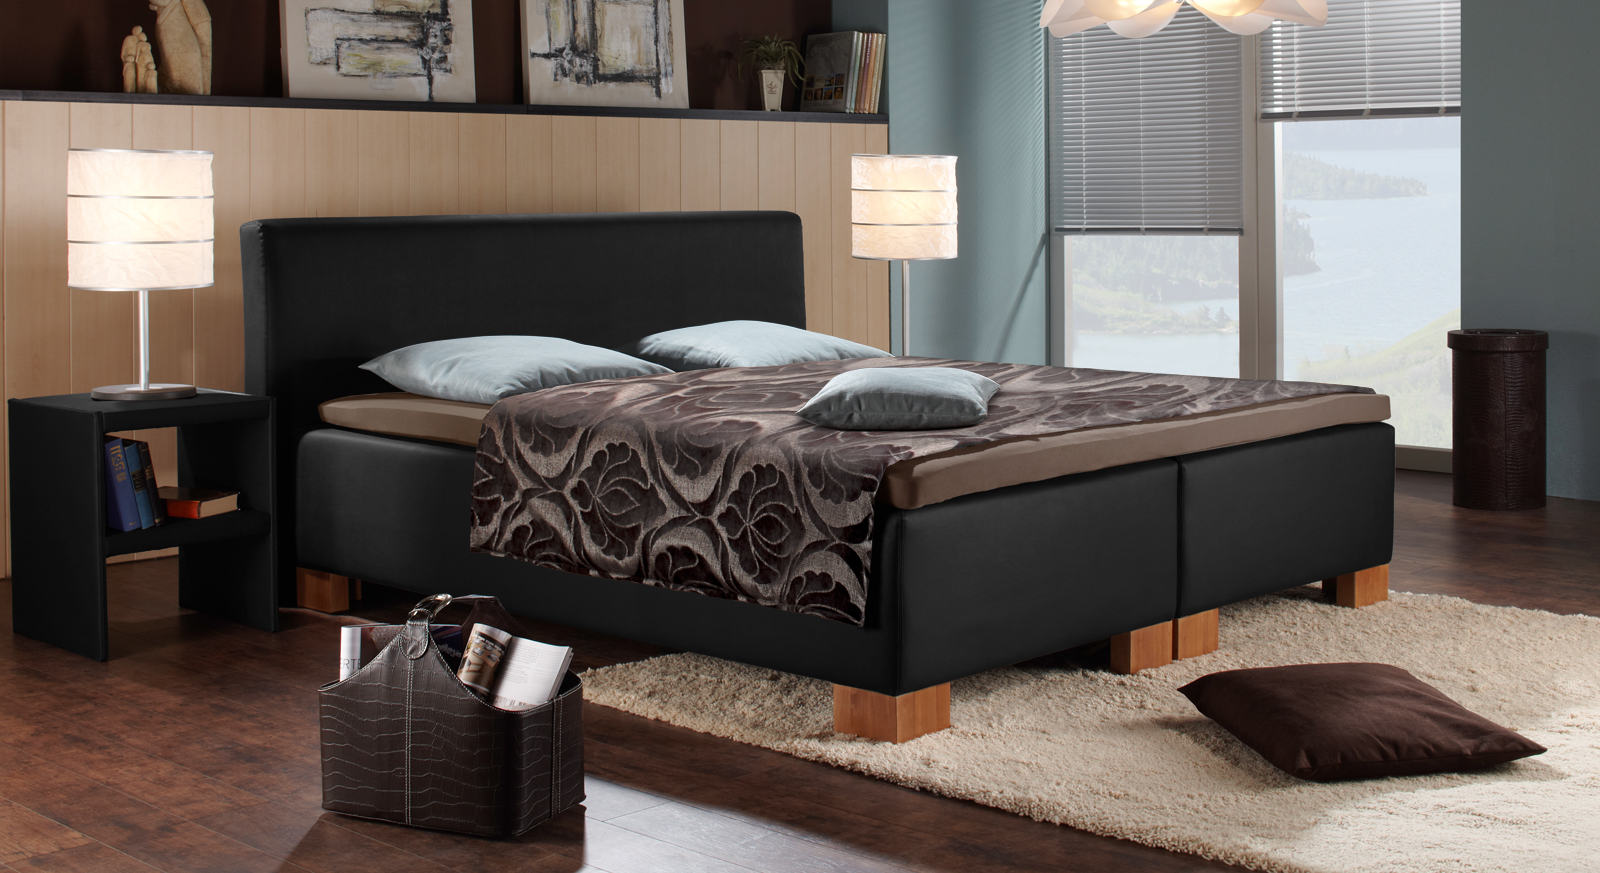 kunstleder boxspringbett in z b wei oder braun hawaii. Black Bedroom Furniture Sets. Home Design Ideas